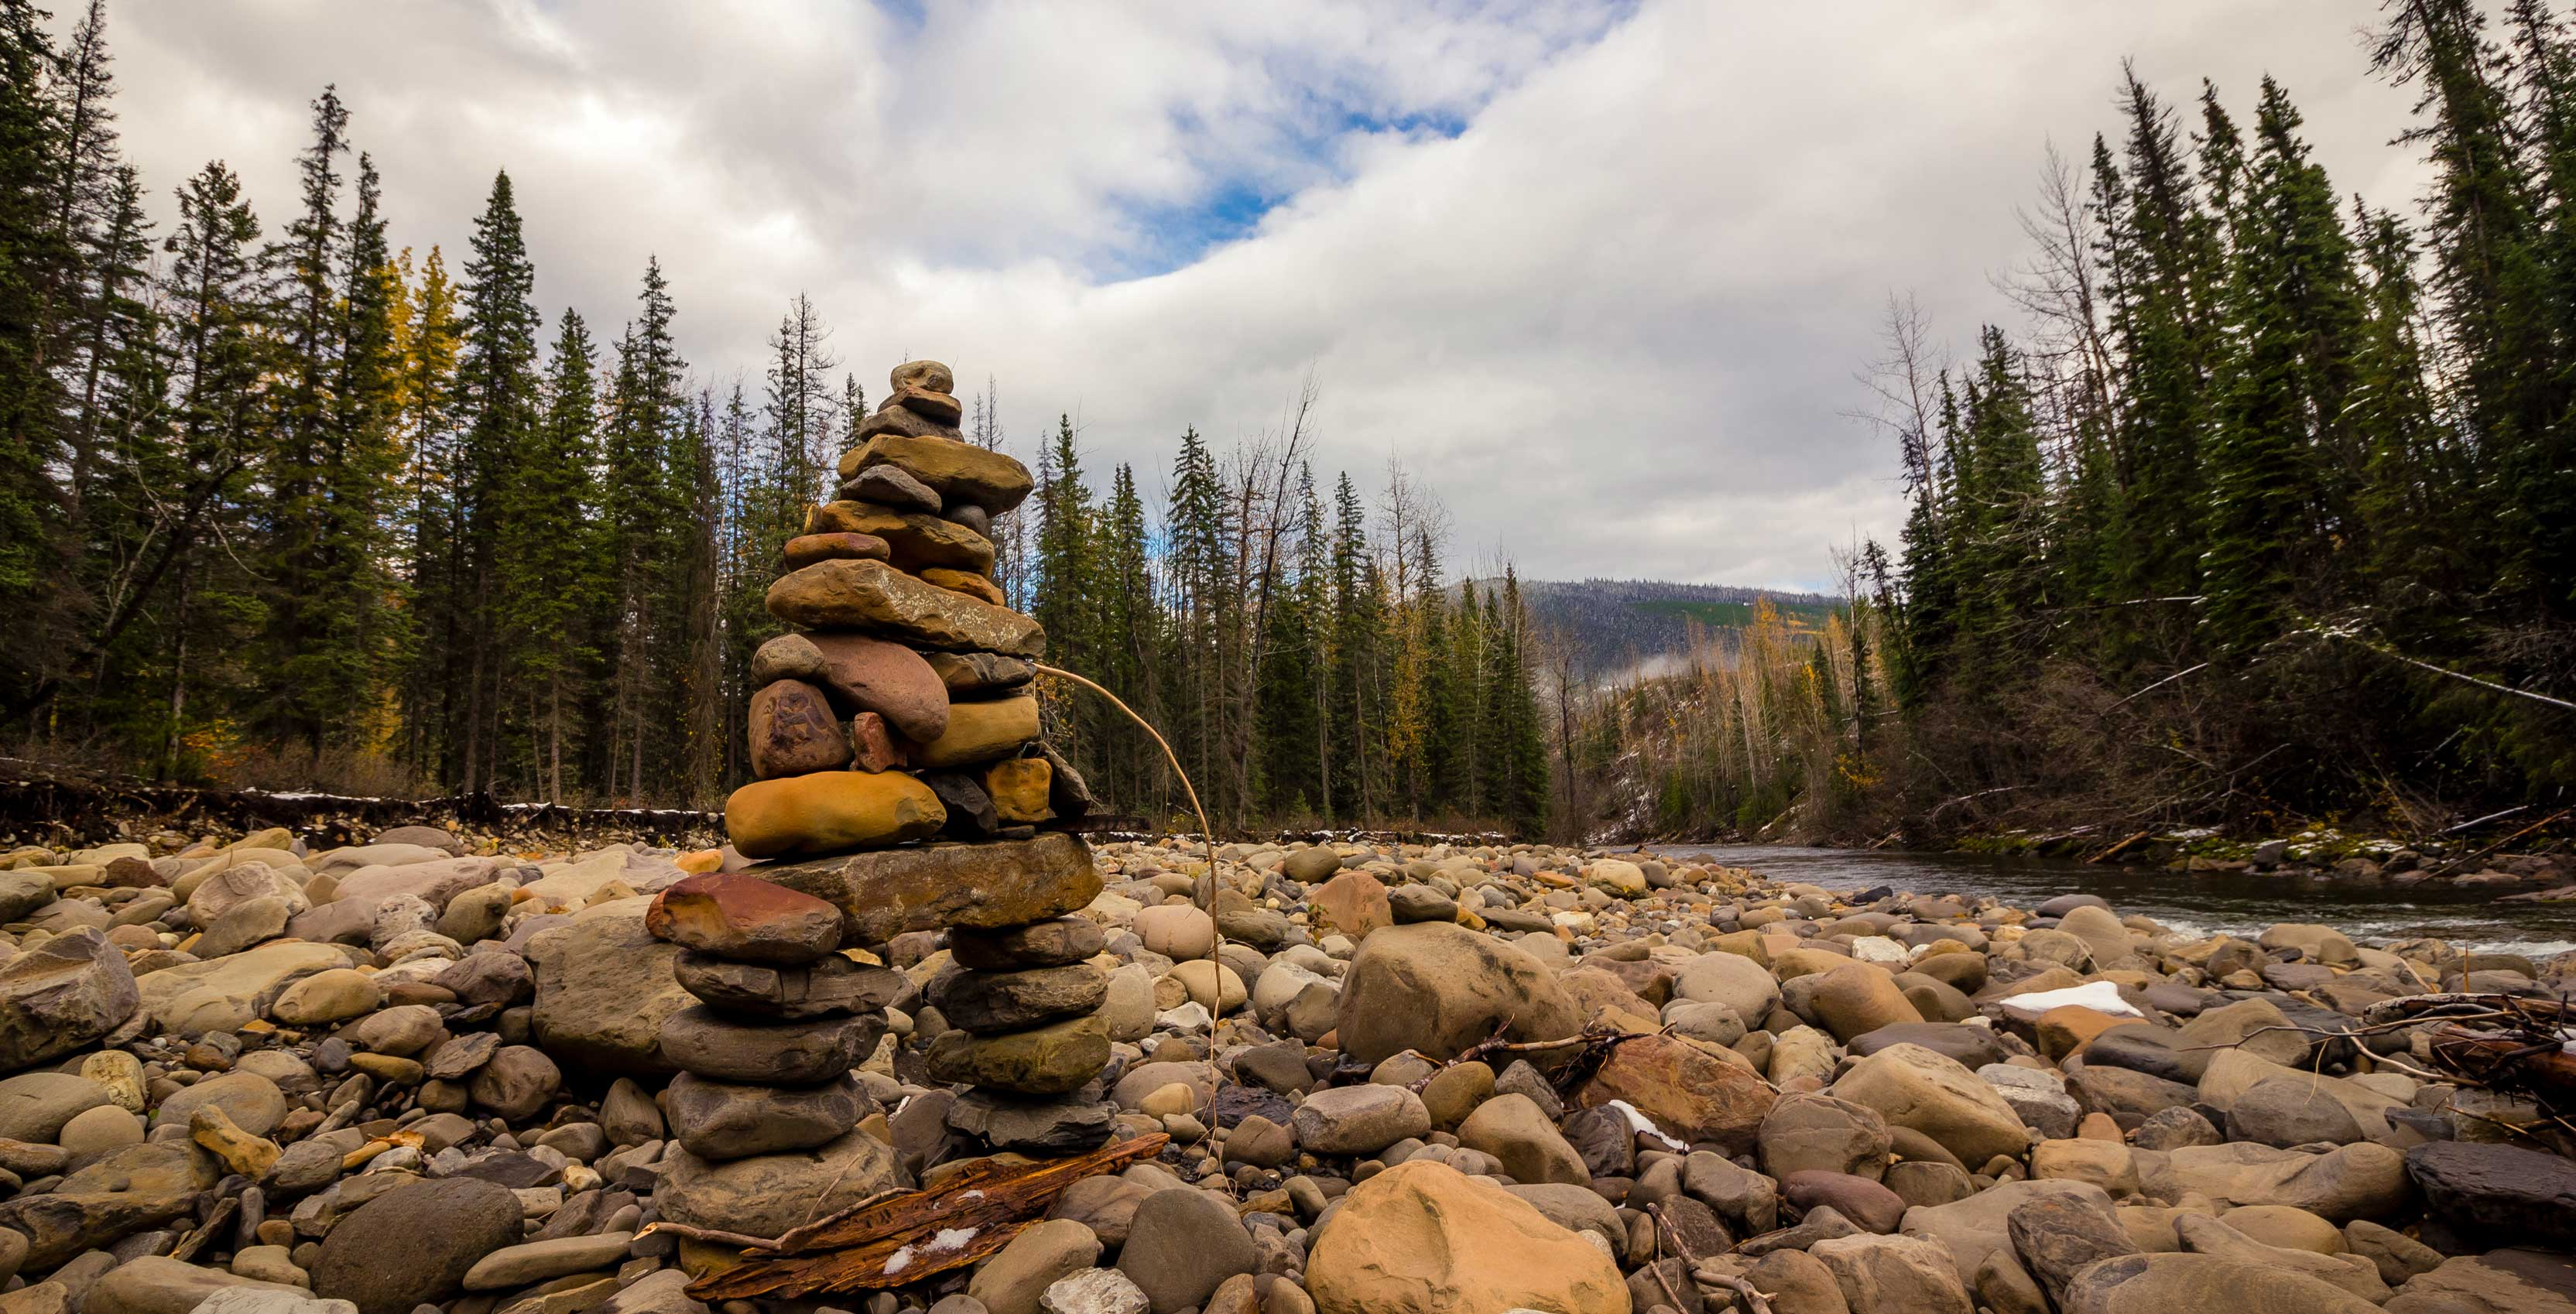 An image of an inuksuk